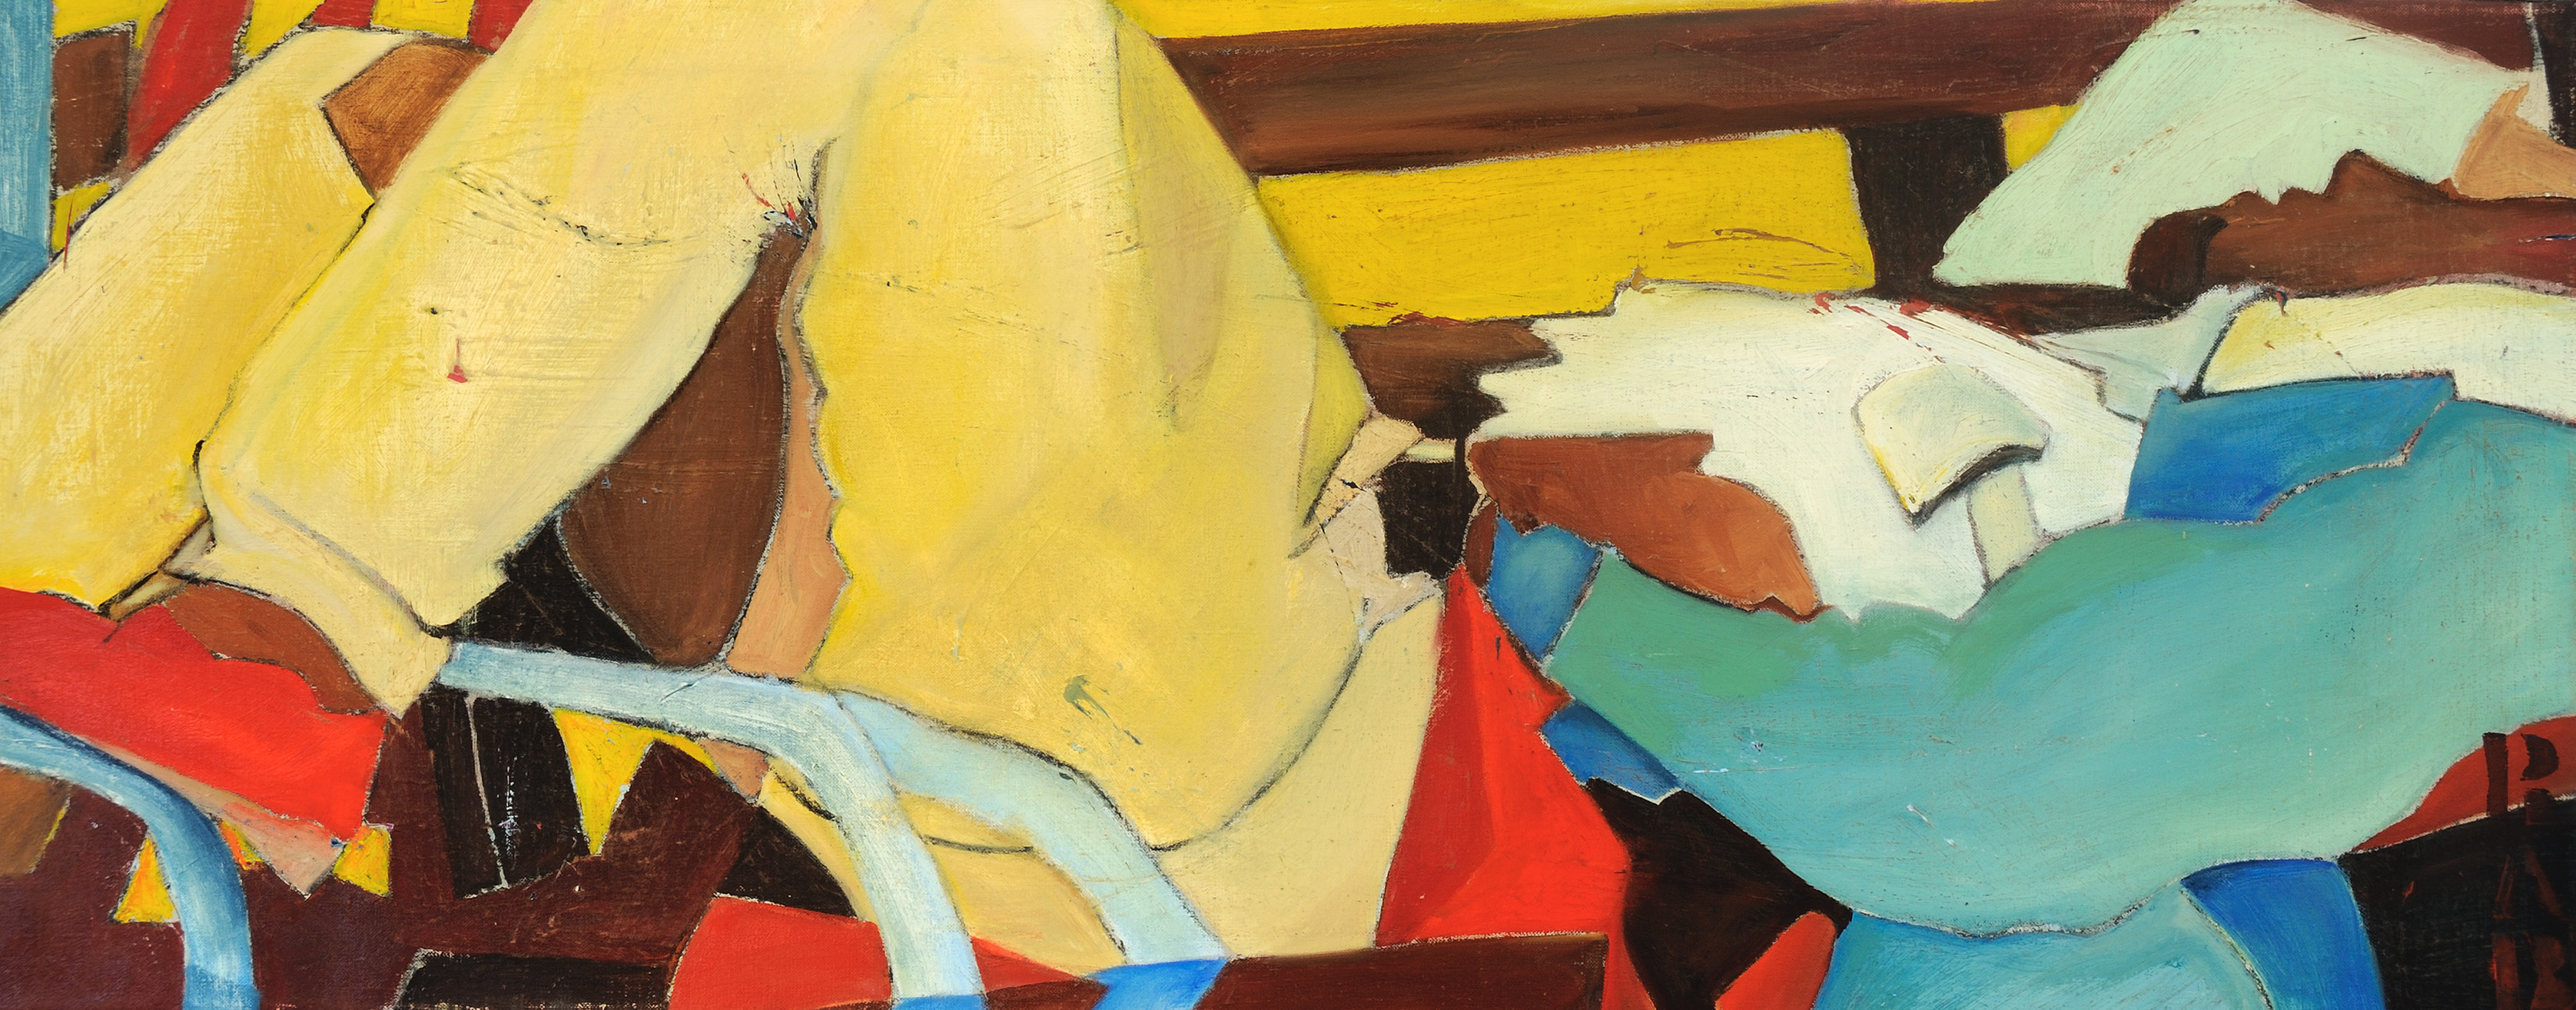 Man Napping on a Park Bench, figurative painting, social abstraction, r.a.b., rachael bohlander, abstractionism, abstracted painting, social justice in art, expressionist painting